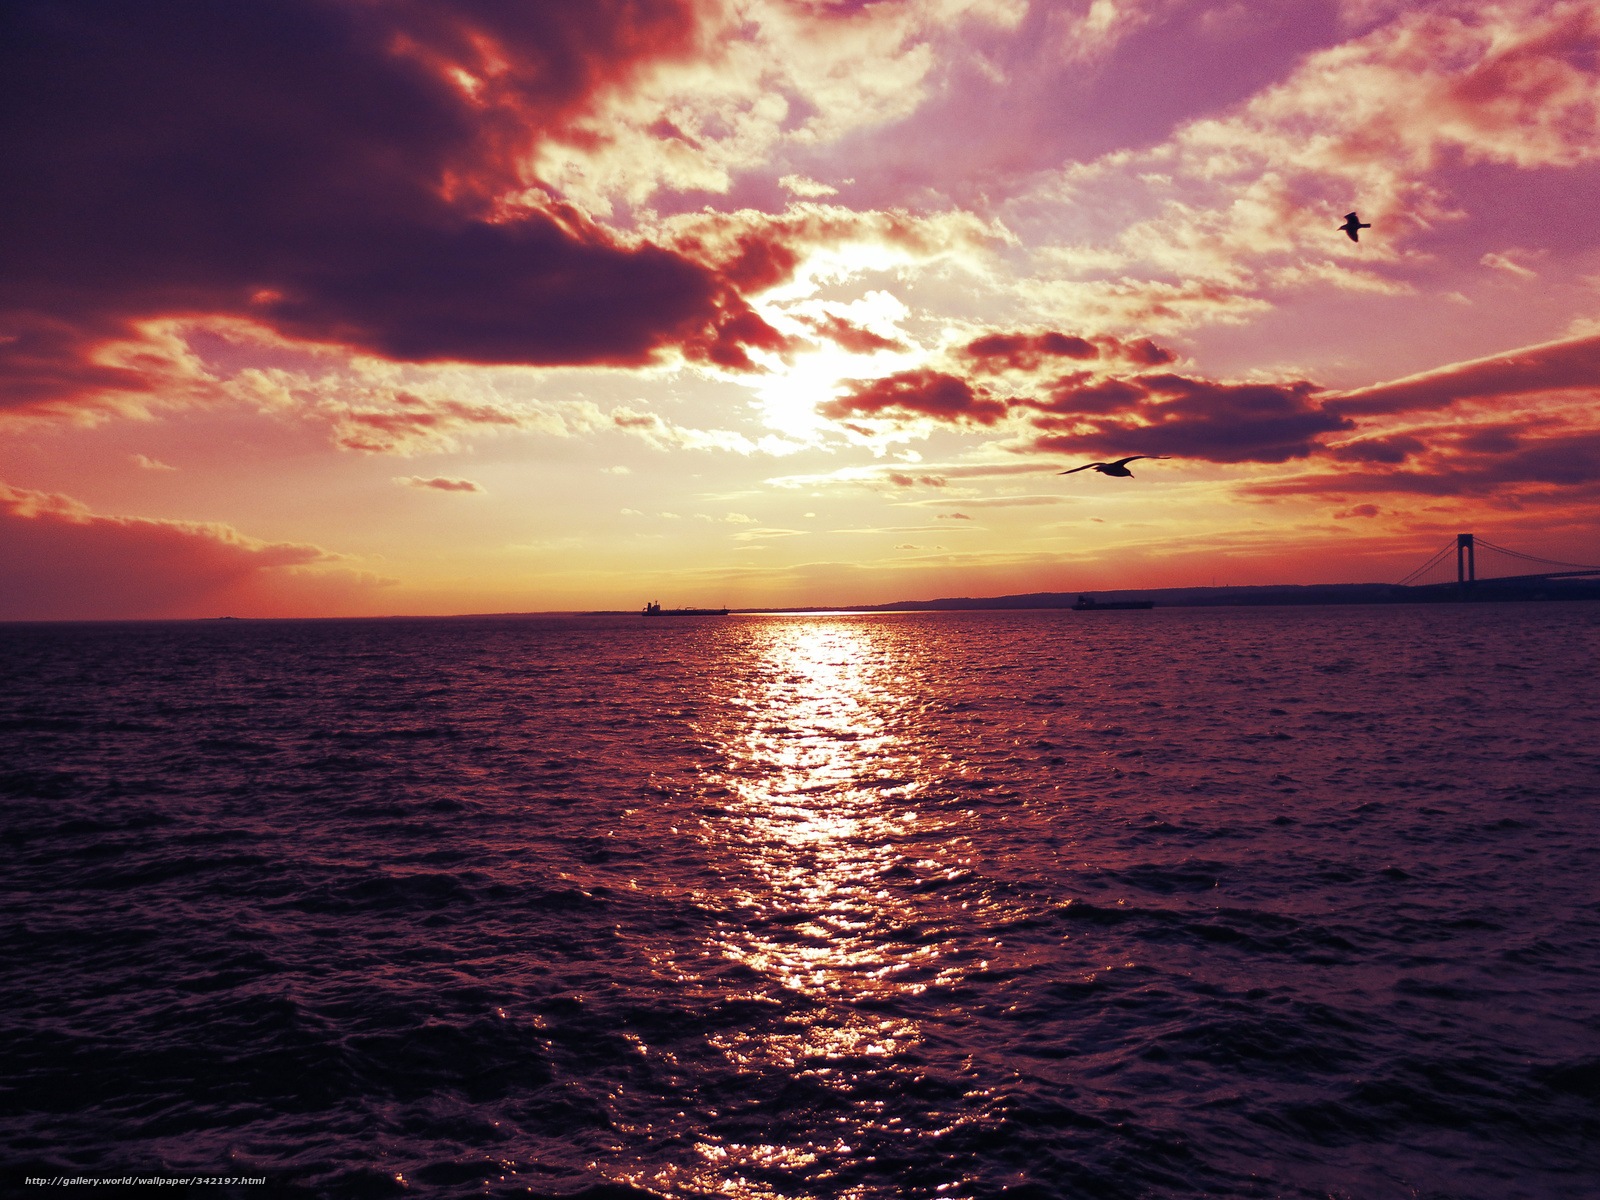 Download wallpaper sea sunset ocean free desktop wallpaper in the resolution 4000x3000 - Wallpaper 3000 x 4000 ...